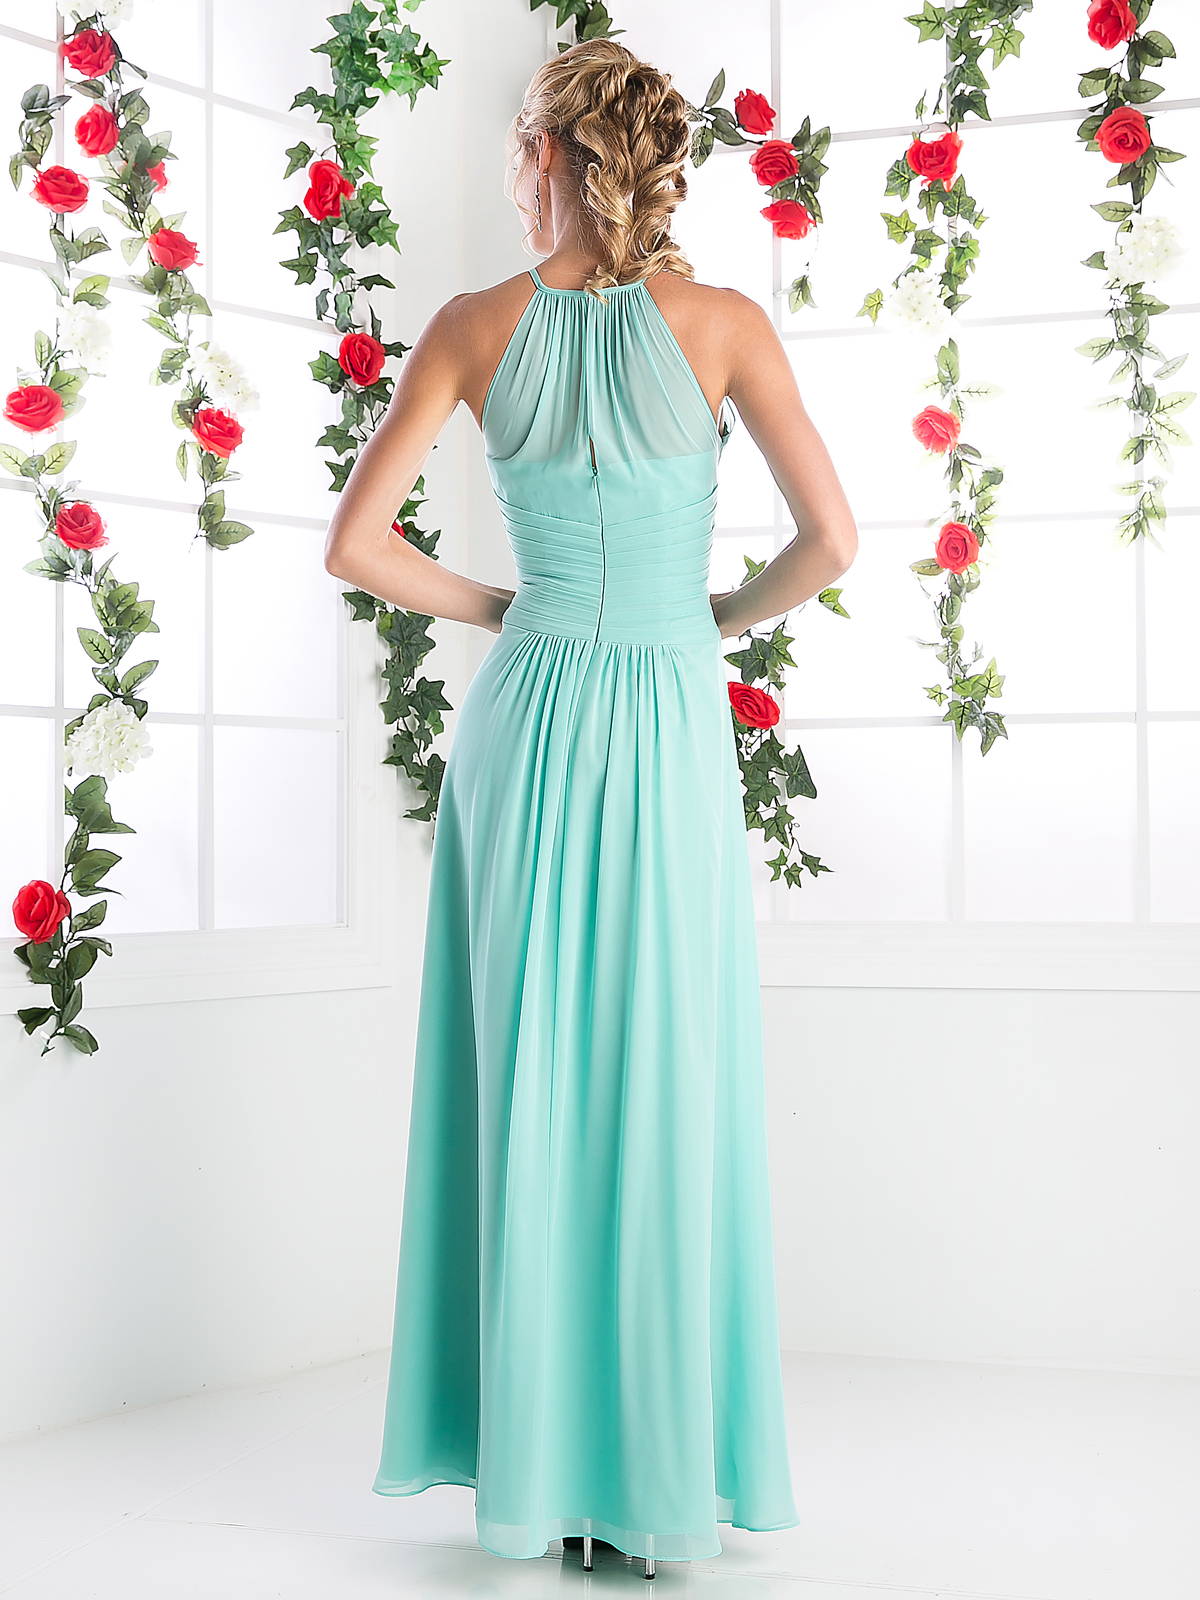 Cd Halter Halter Overlay Bridesmaid Dress Sung Boutique L A